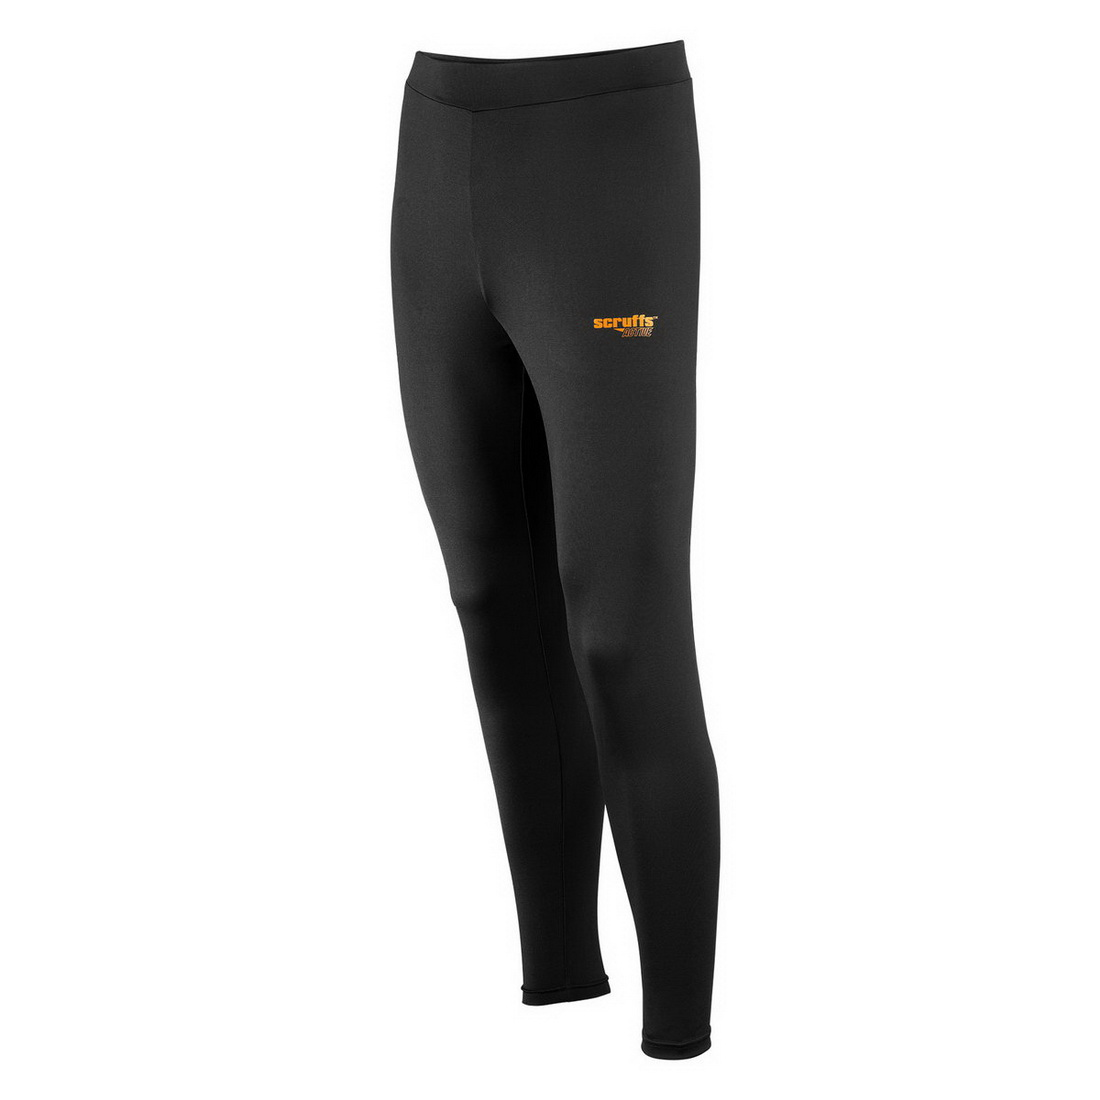 Active Pro Range Baselayer Thermal Work Bottom XXL Black T51378